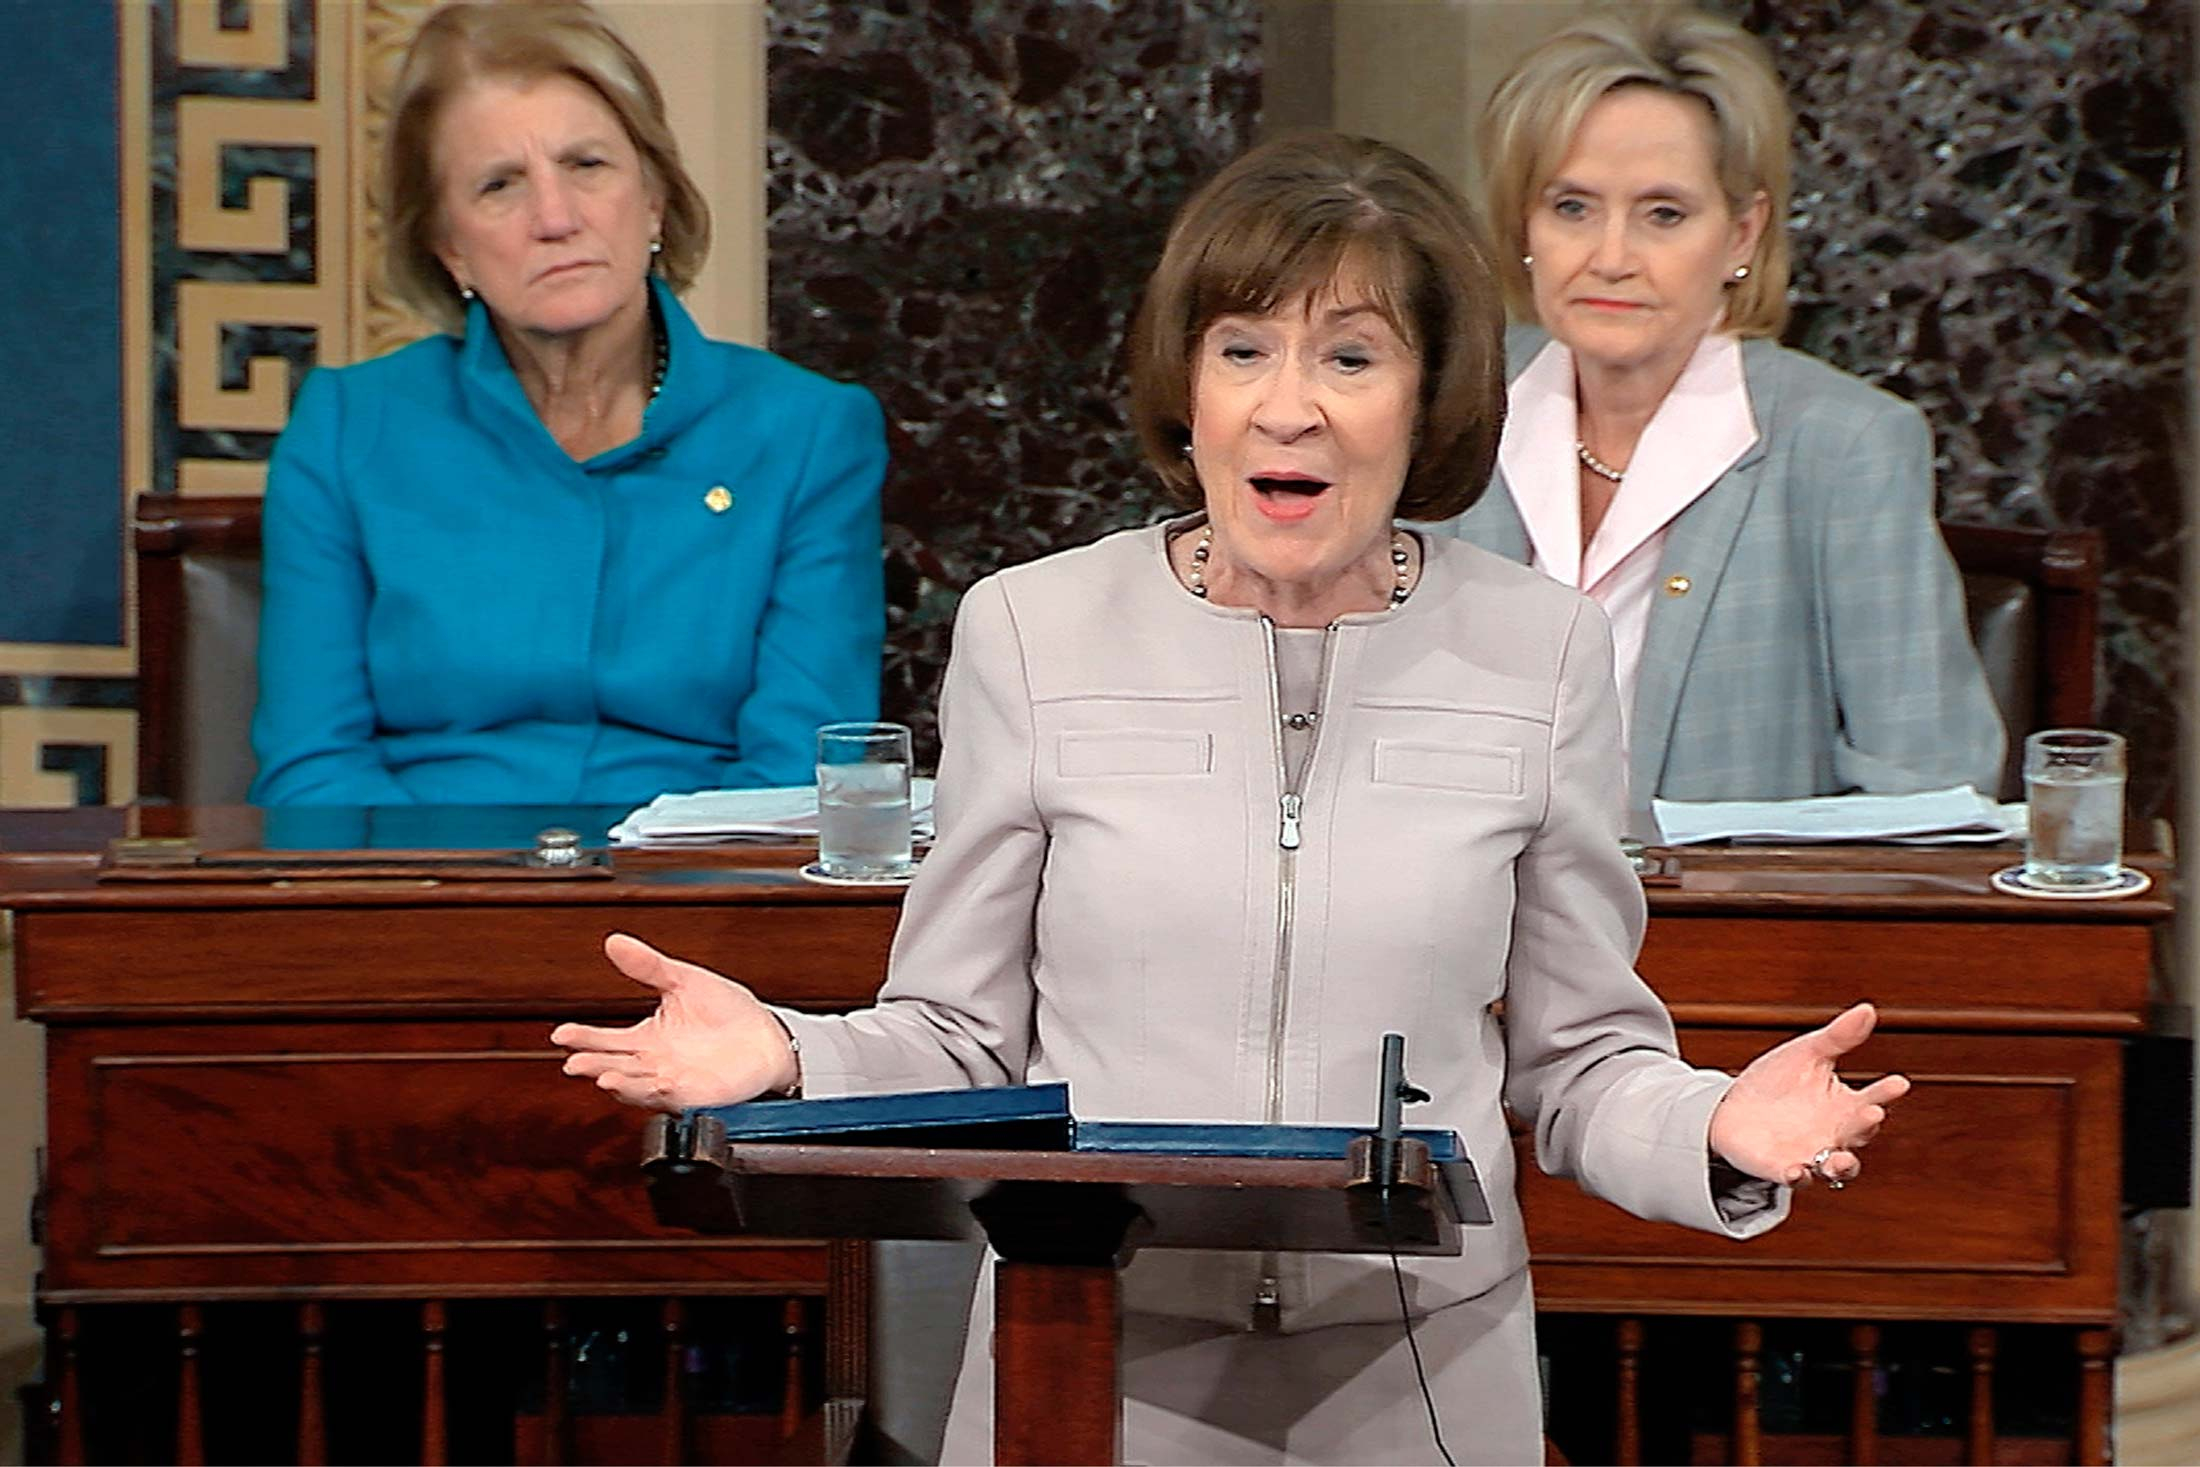 Susan Collins at a podium on the Senate floor with female senators behind her